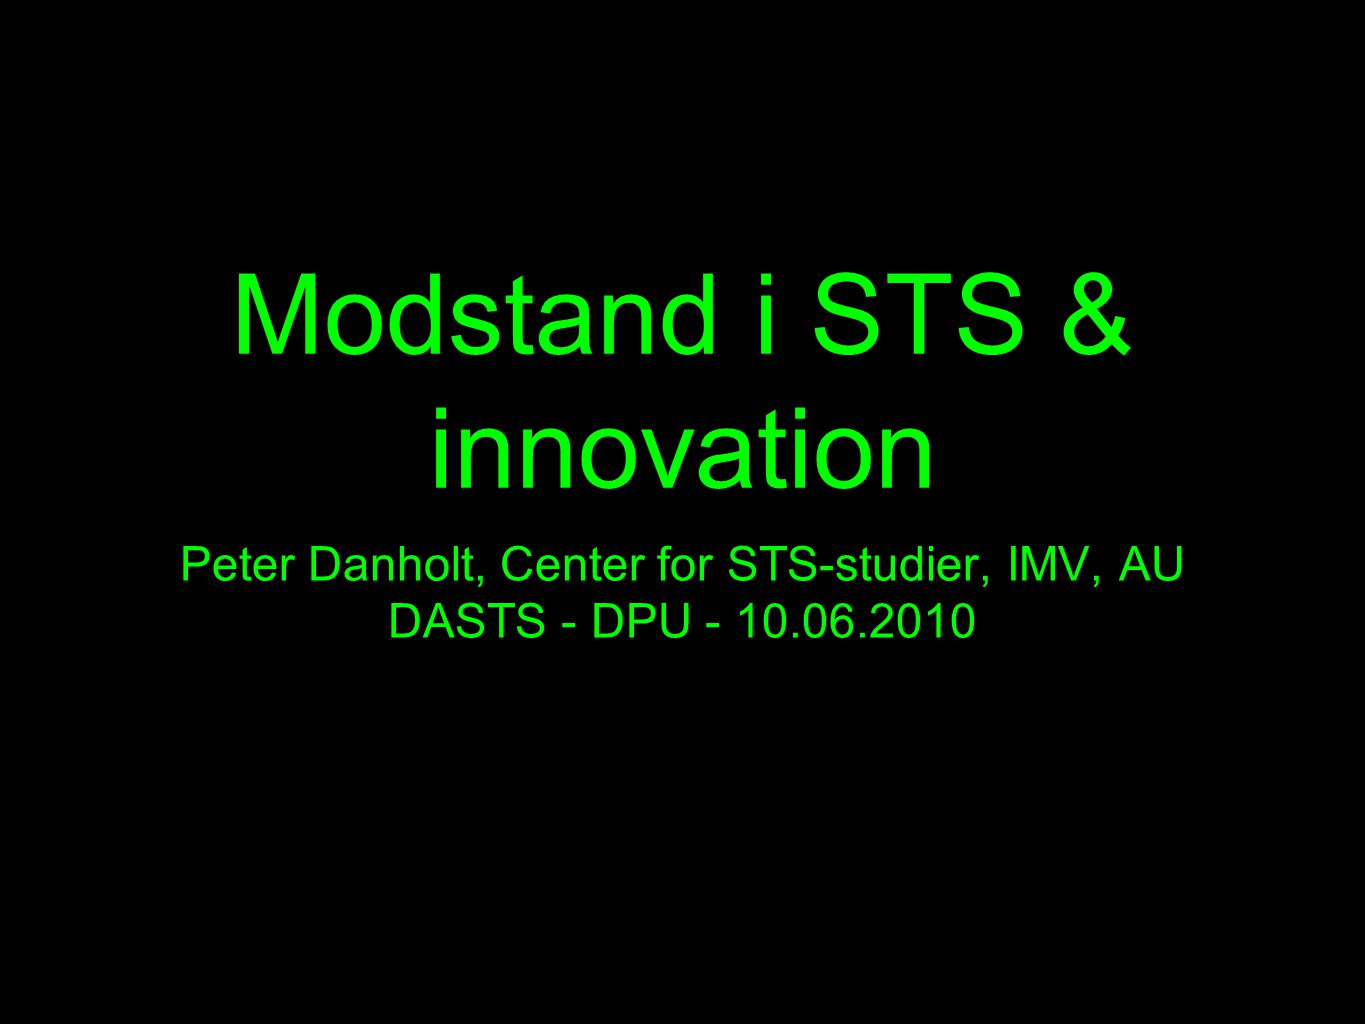 Modstand i STS & innovation Peter Danholt, Center for STS-studier, IMV, AU DASTS - DPU - 10.06.2010